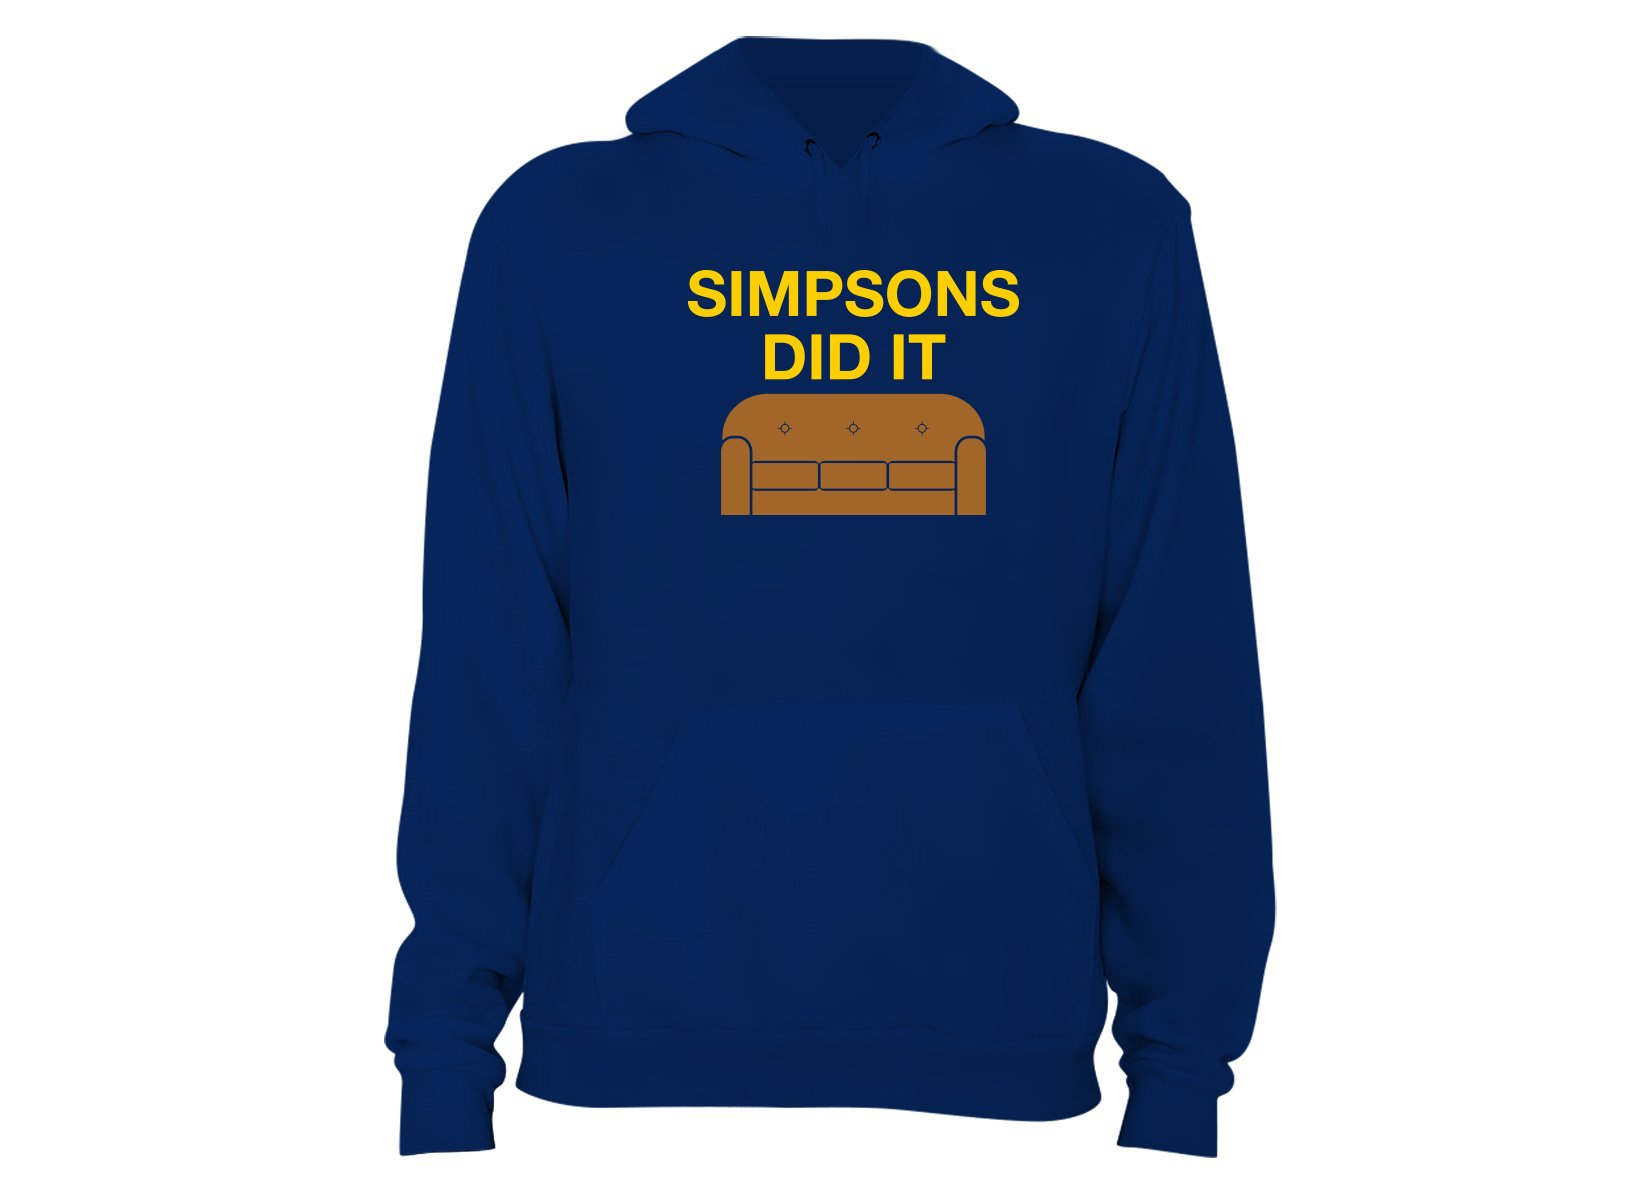 Simpsons Did It on Hoodie